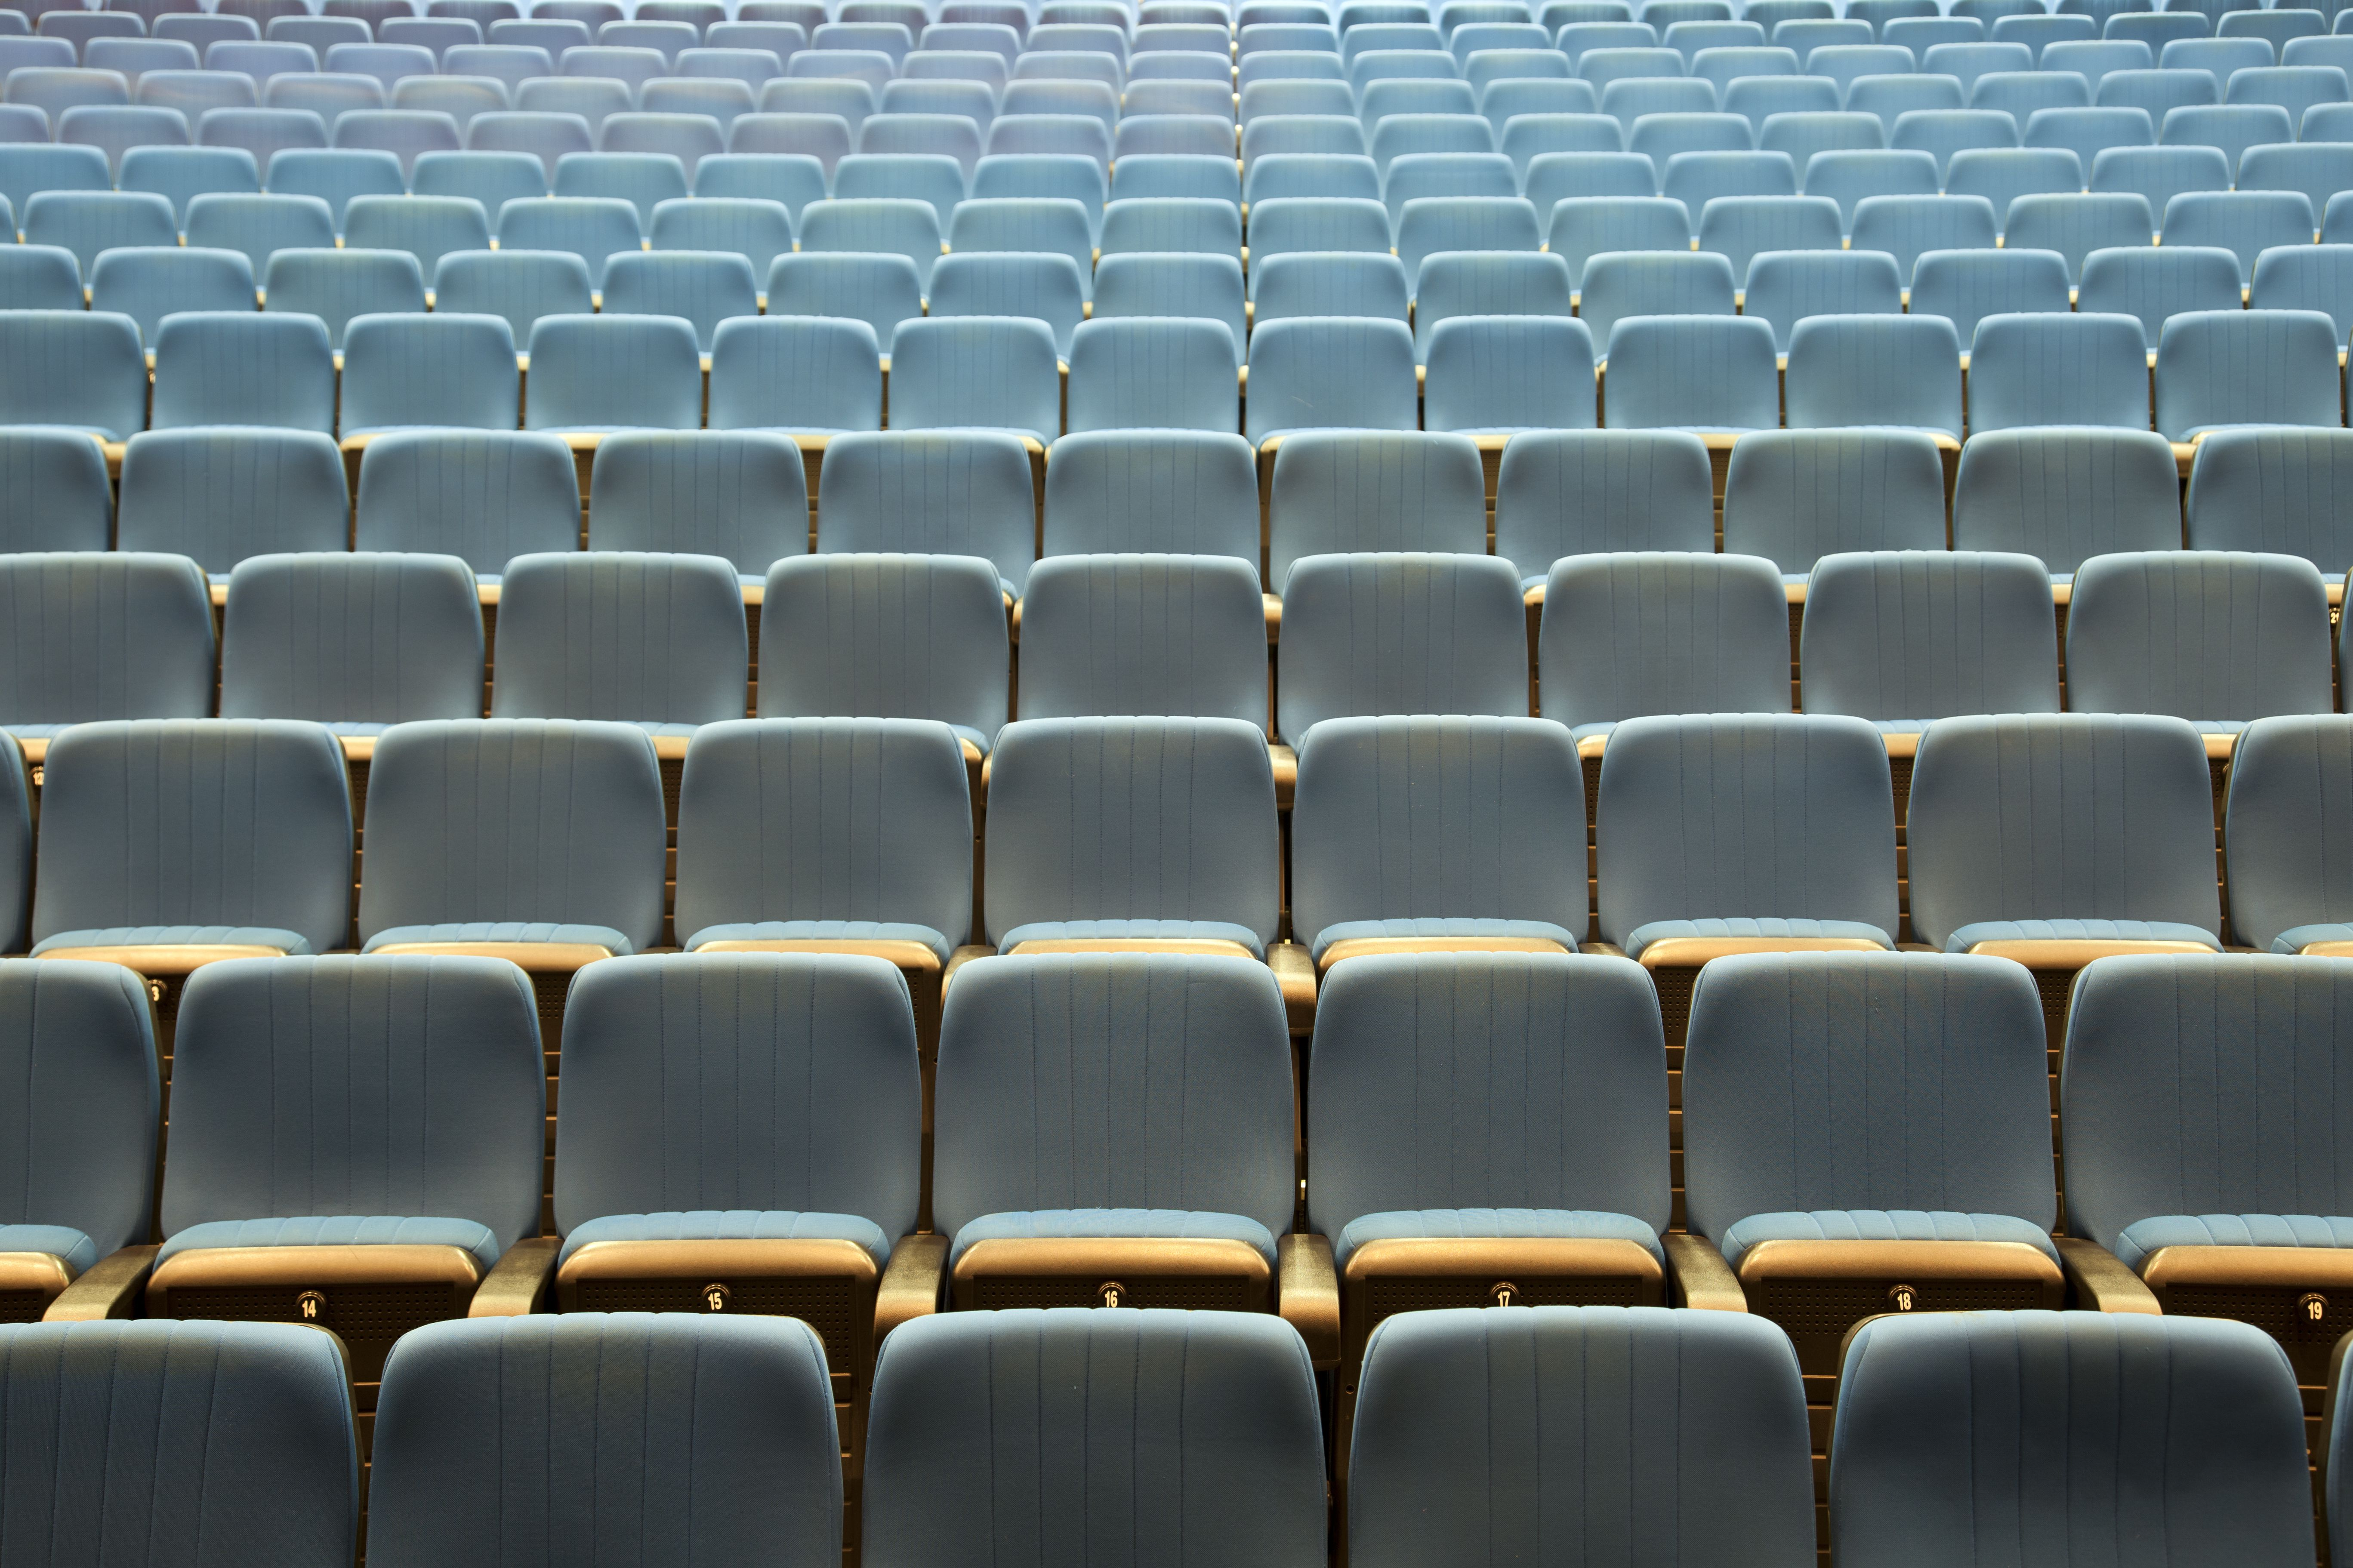 Empty rows of seats in an auditorium